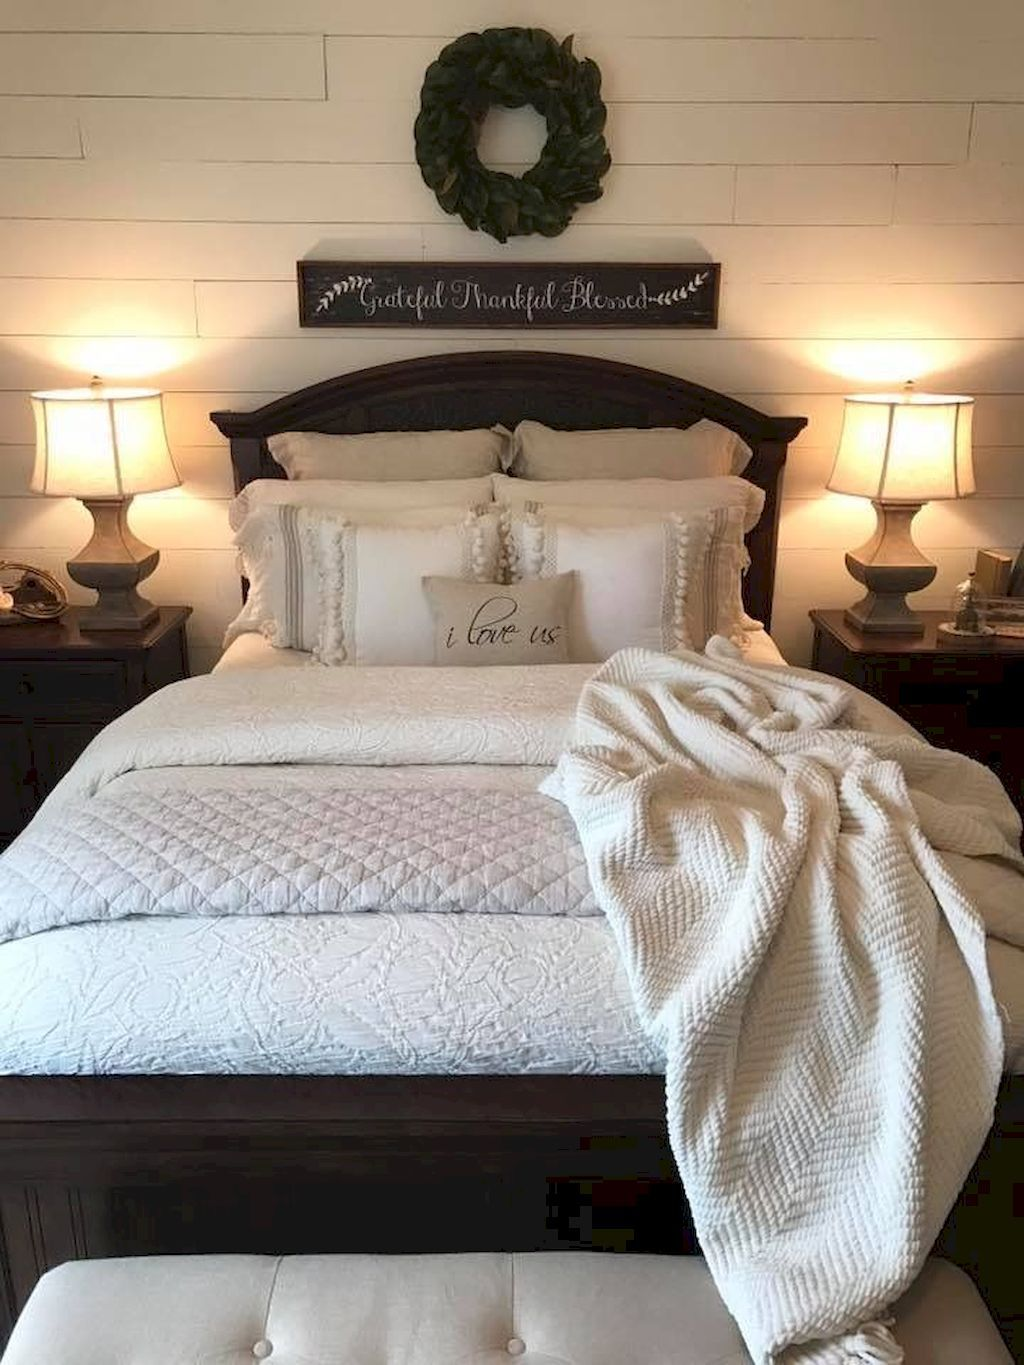 45 Rustic Master Bedroom Ideas In 2020 Farmhouse Style Master Bedroom Master Bedrooms Decor Remodel Bedroom